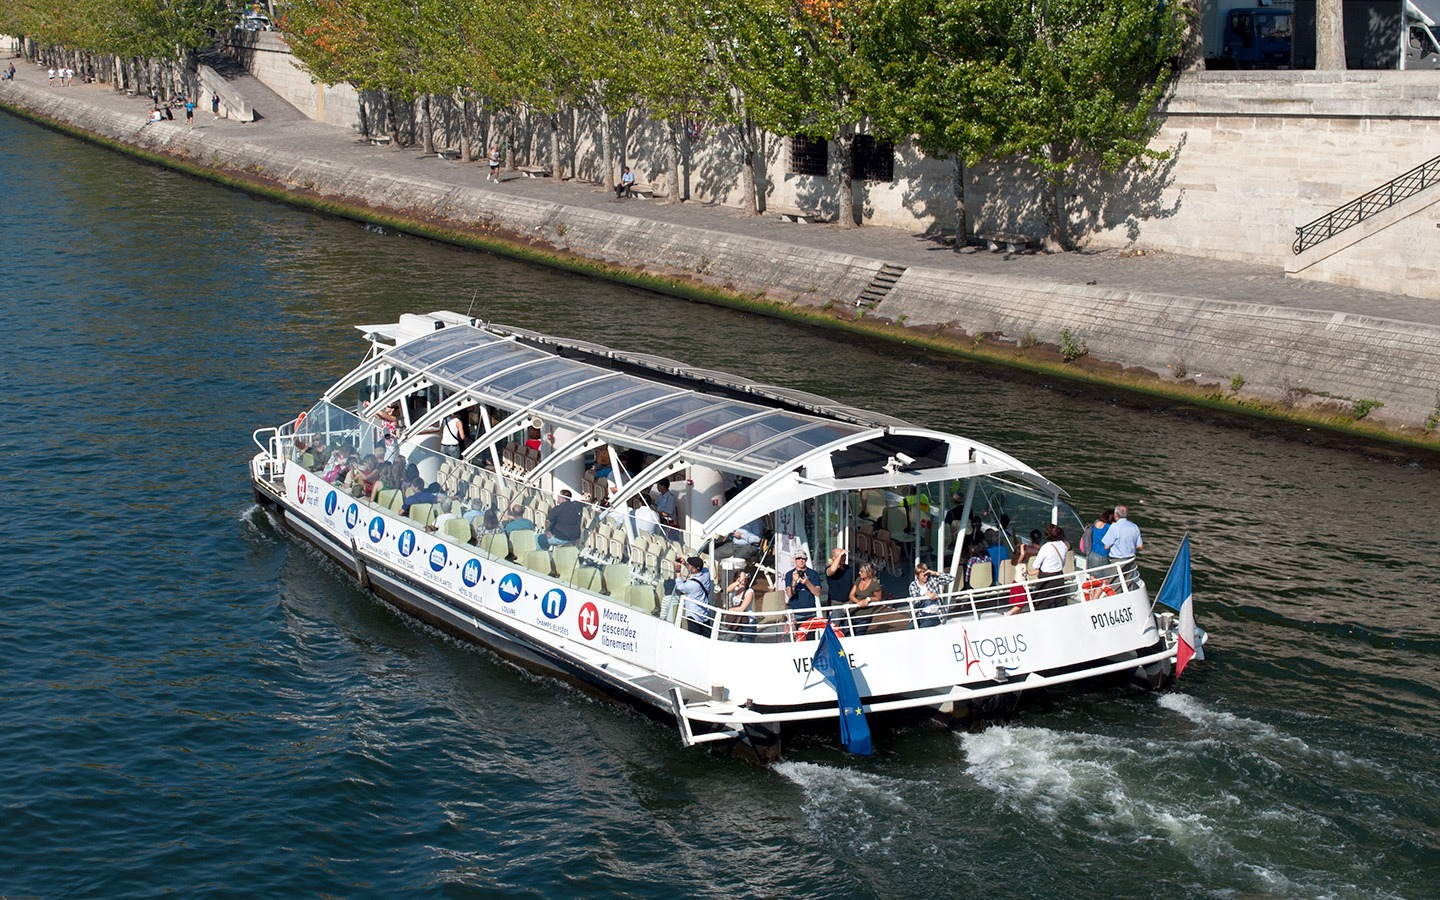 The Batobus boat trips along the Seine, Paris